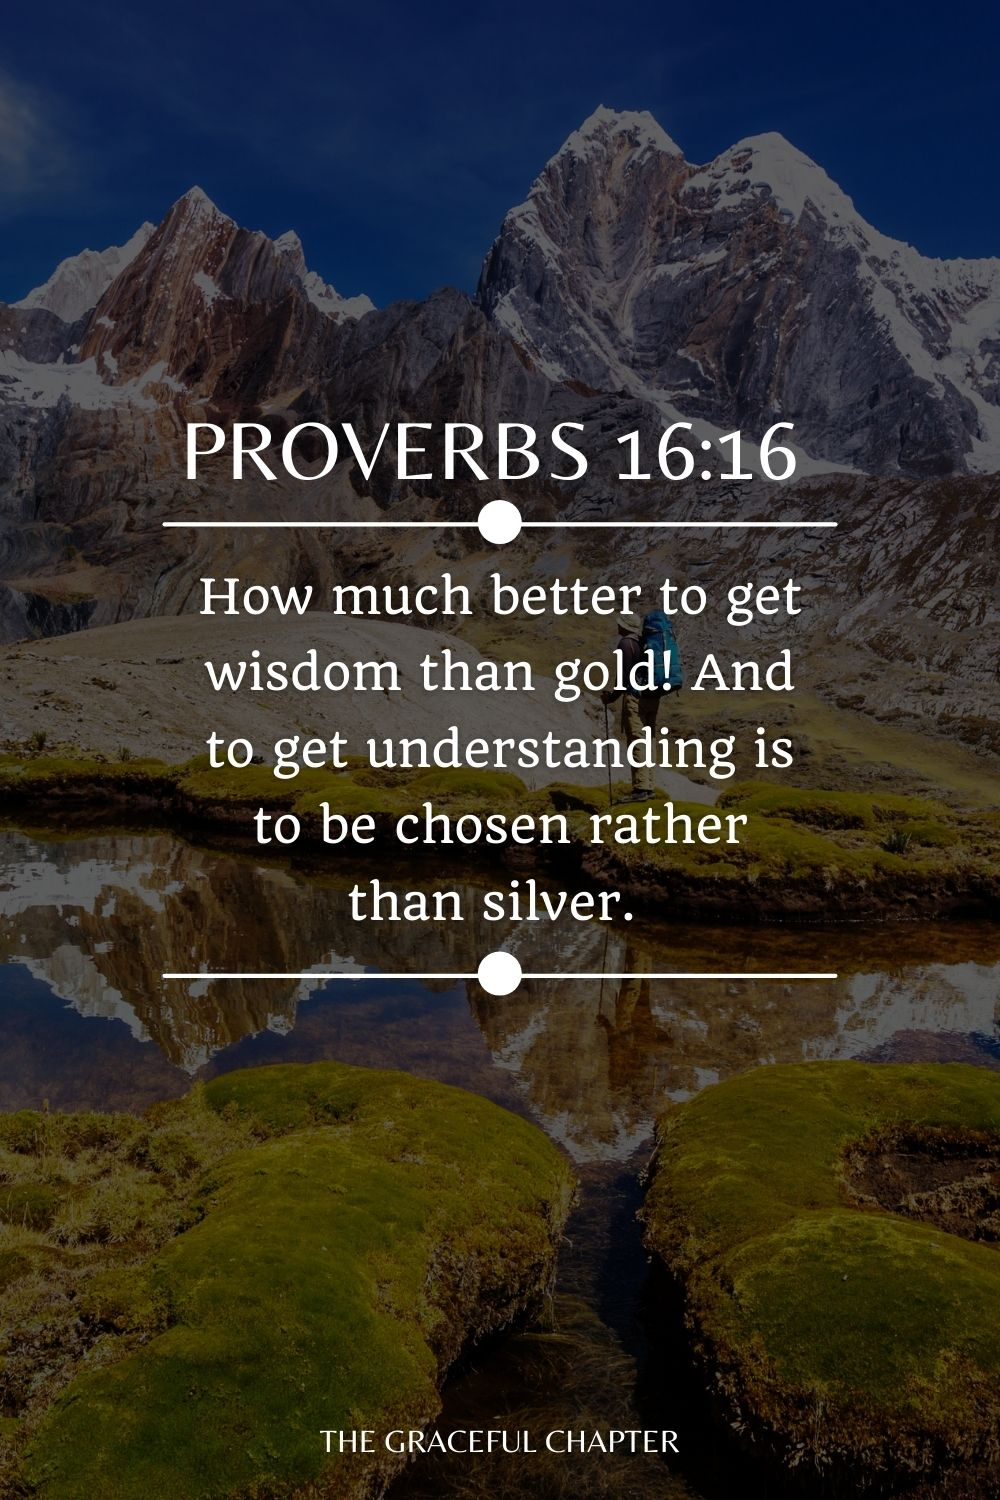 How much better to get wisdom than gold! And to get understanding is to be chosen rather than silver. Proverbs 16:16